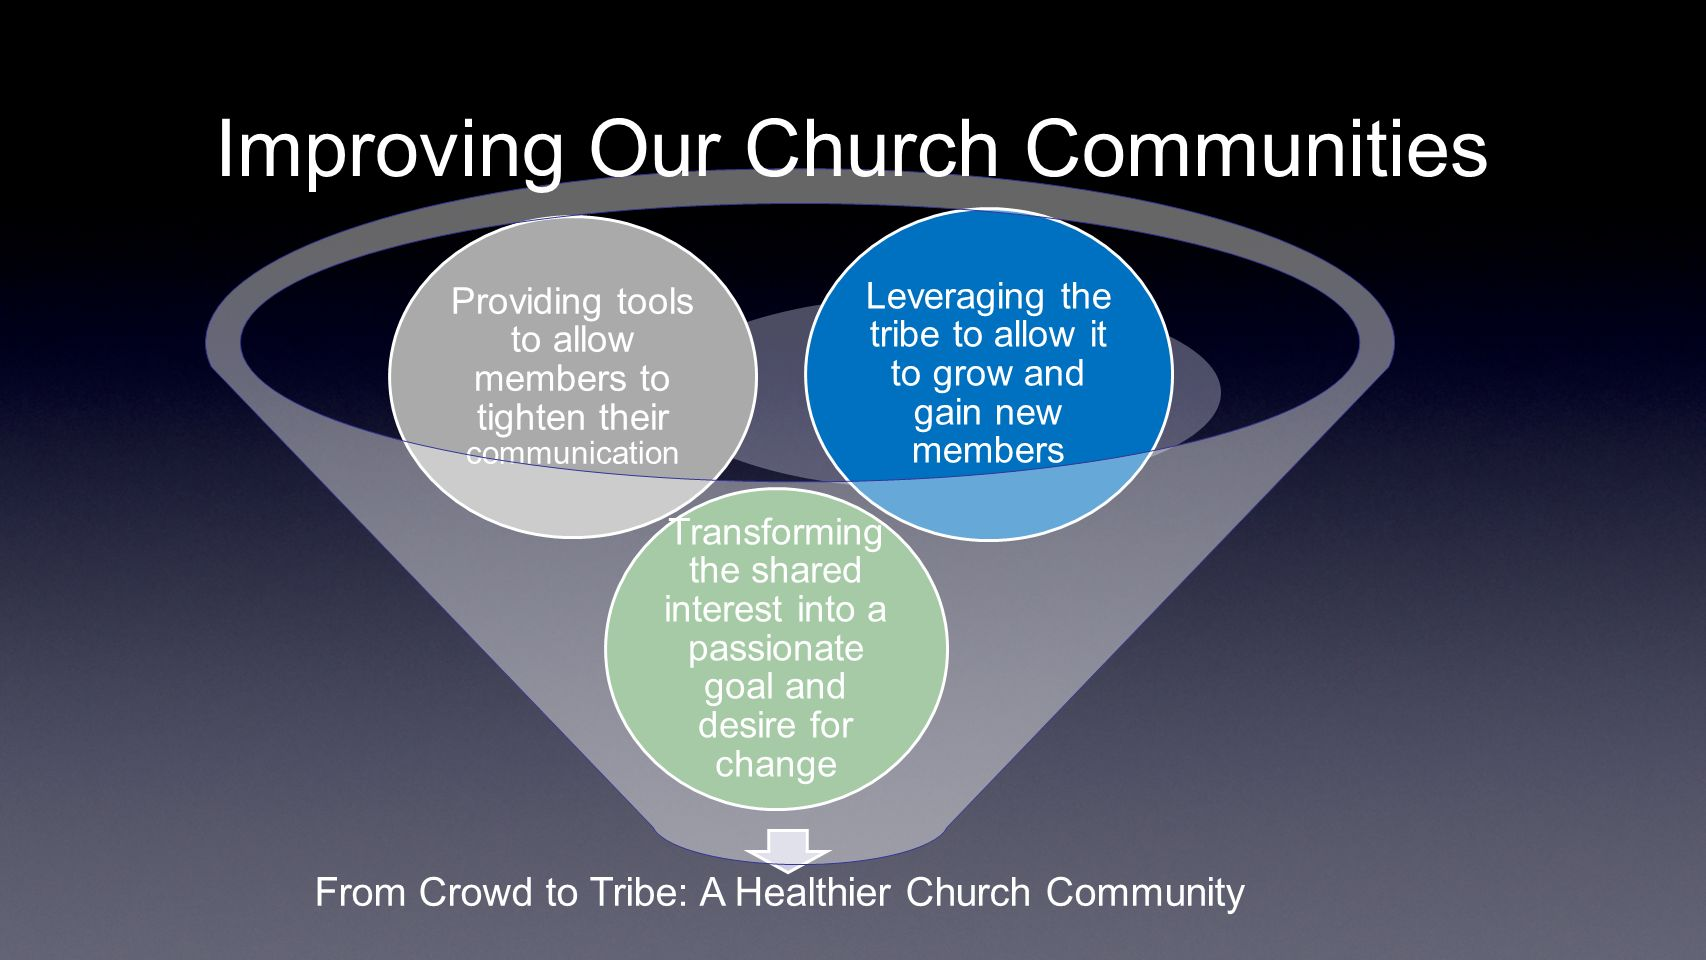 From Crowd to Tribe: A Healthier Church Community Leveraging the tribe to allow it to grow and gain new members Transforming the shared interest into a passionate goal and desire for change Providing tools to allow members to tighten their communication Improving Our Church Communities